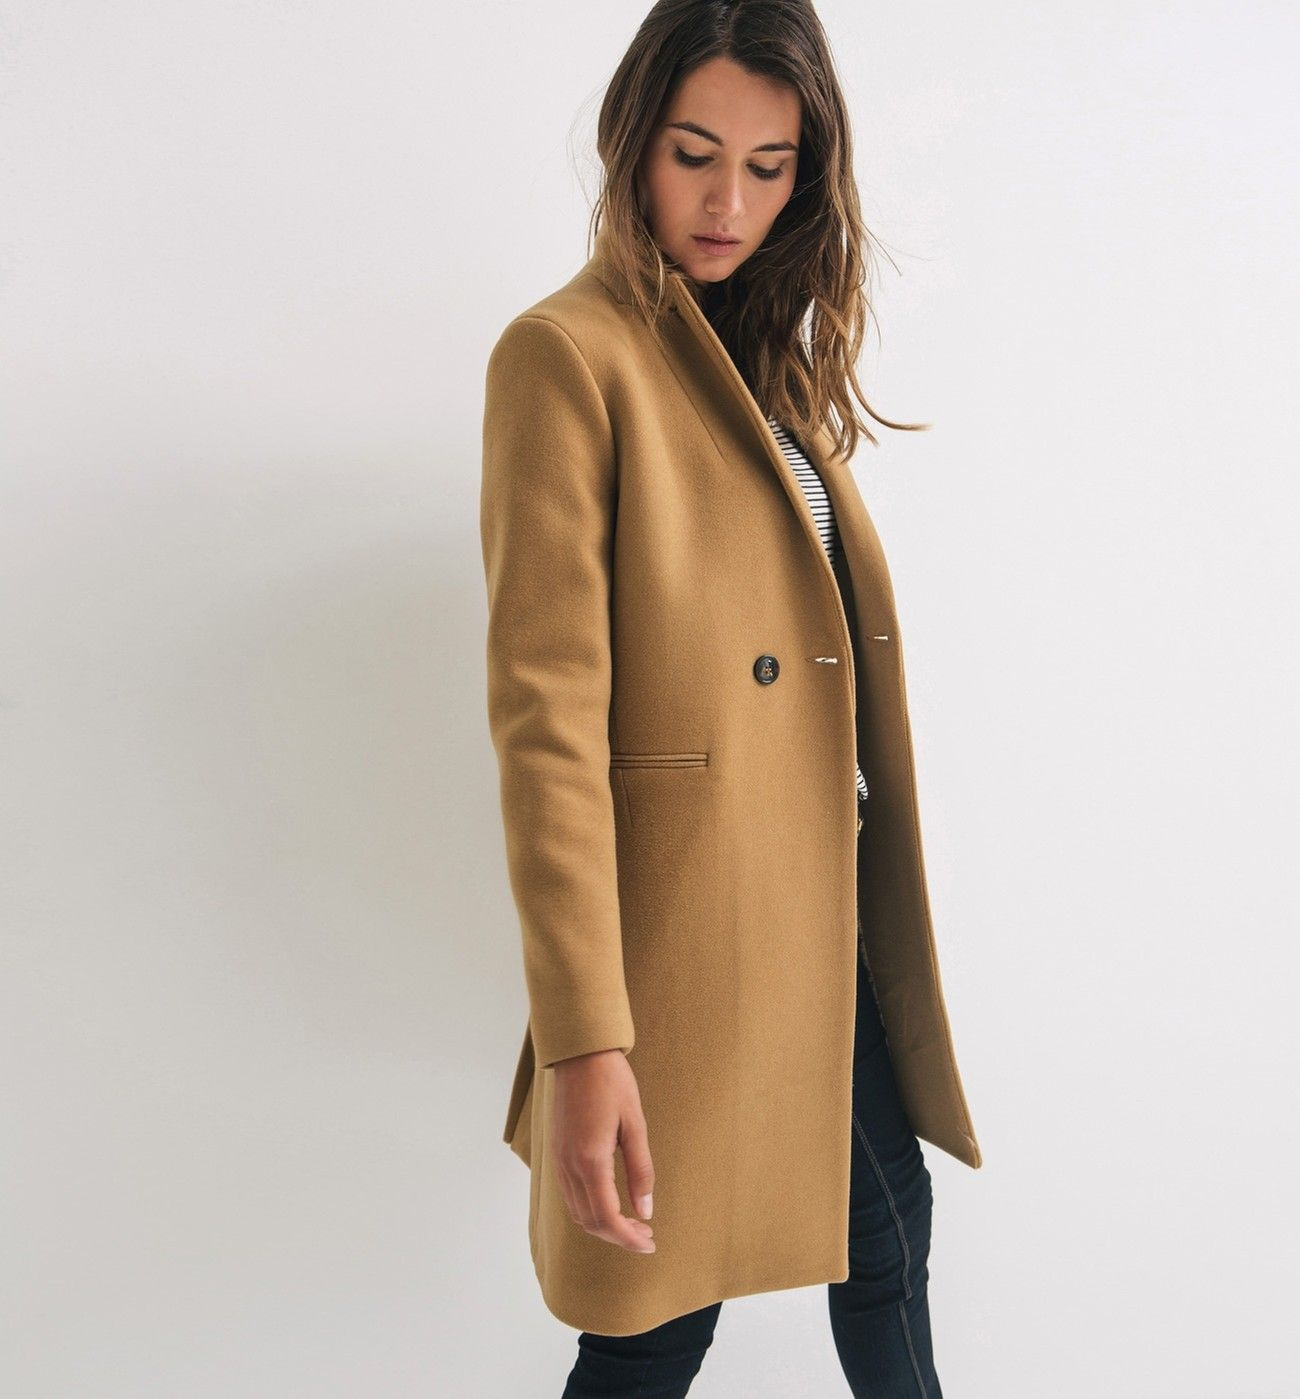 Manteau Droit Femme Dress Me Coat Camel Coat Fashion